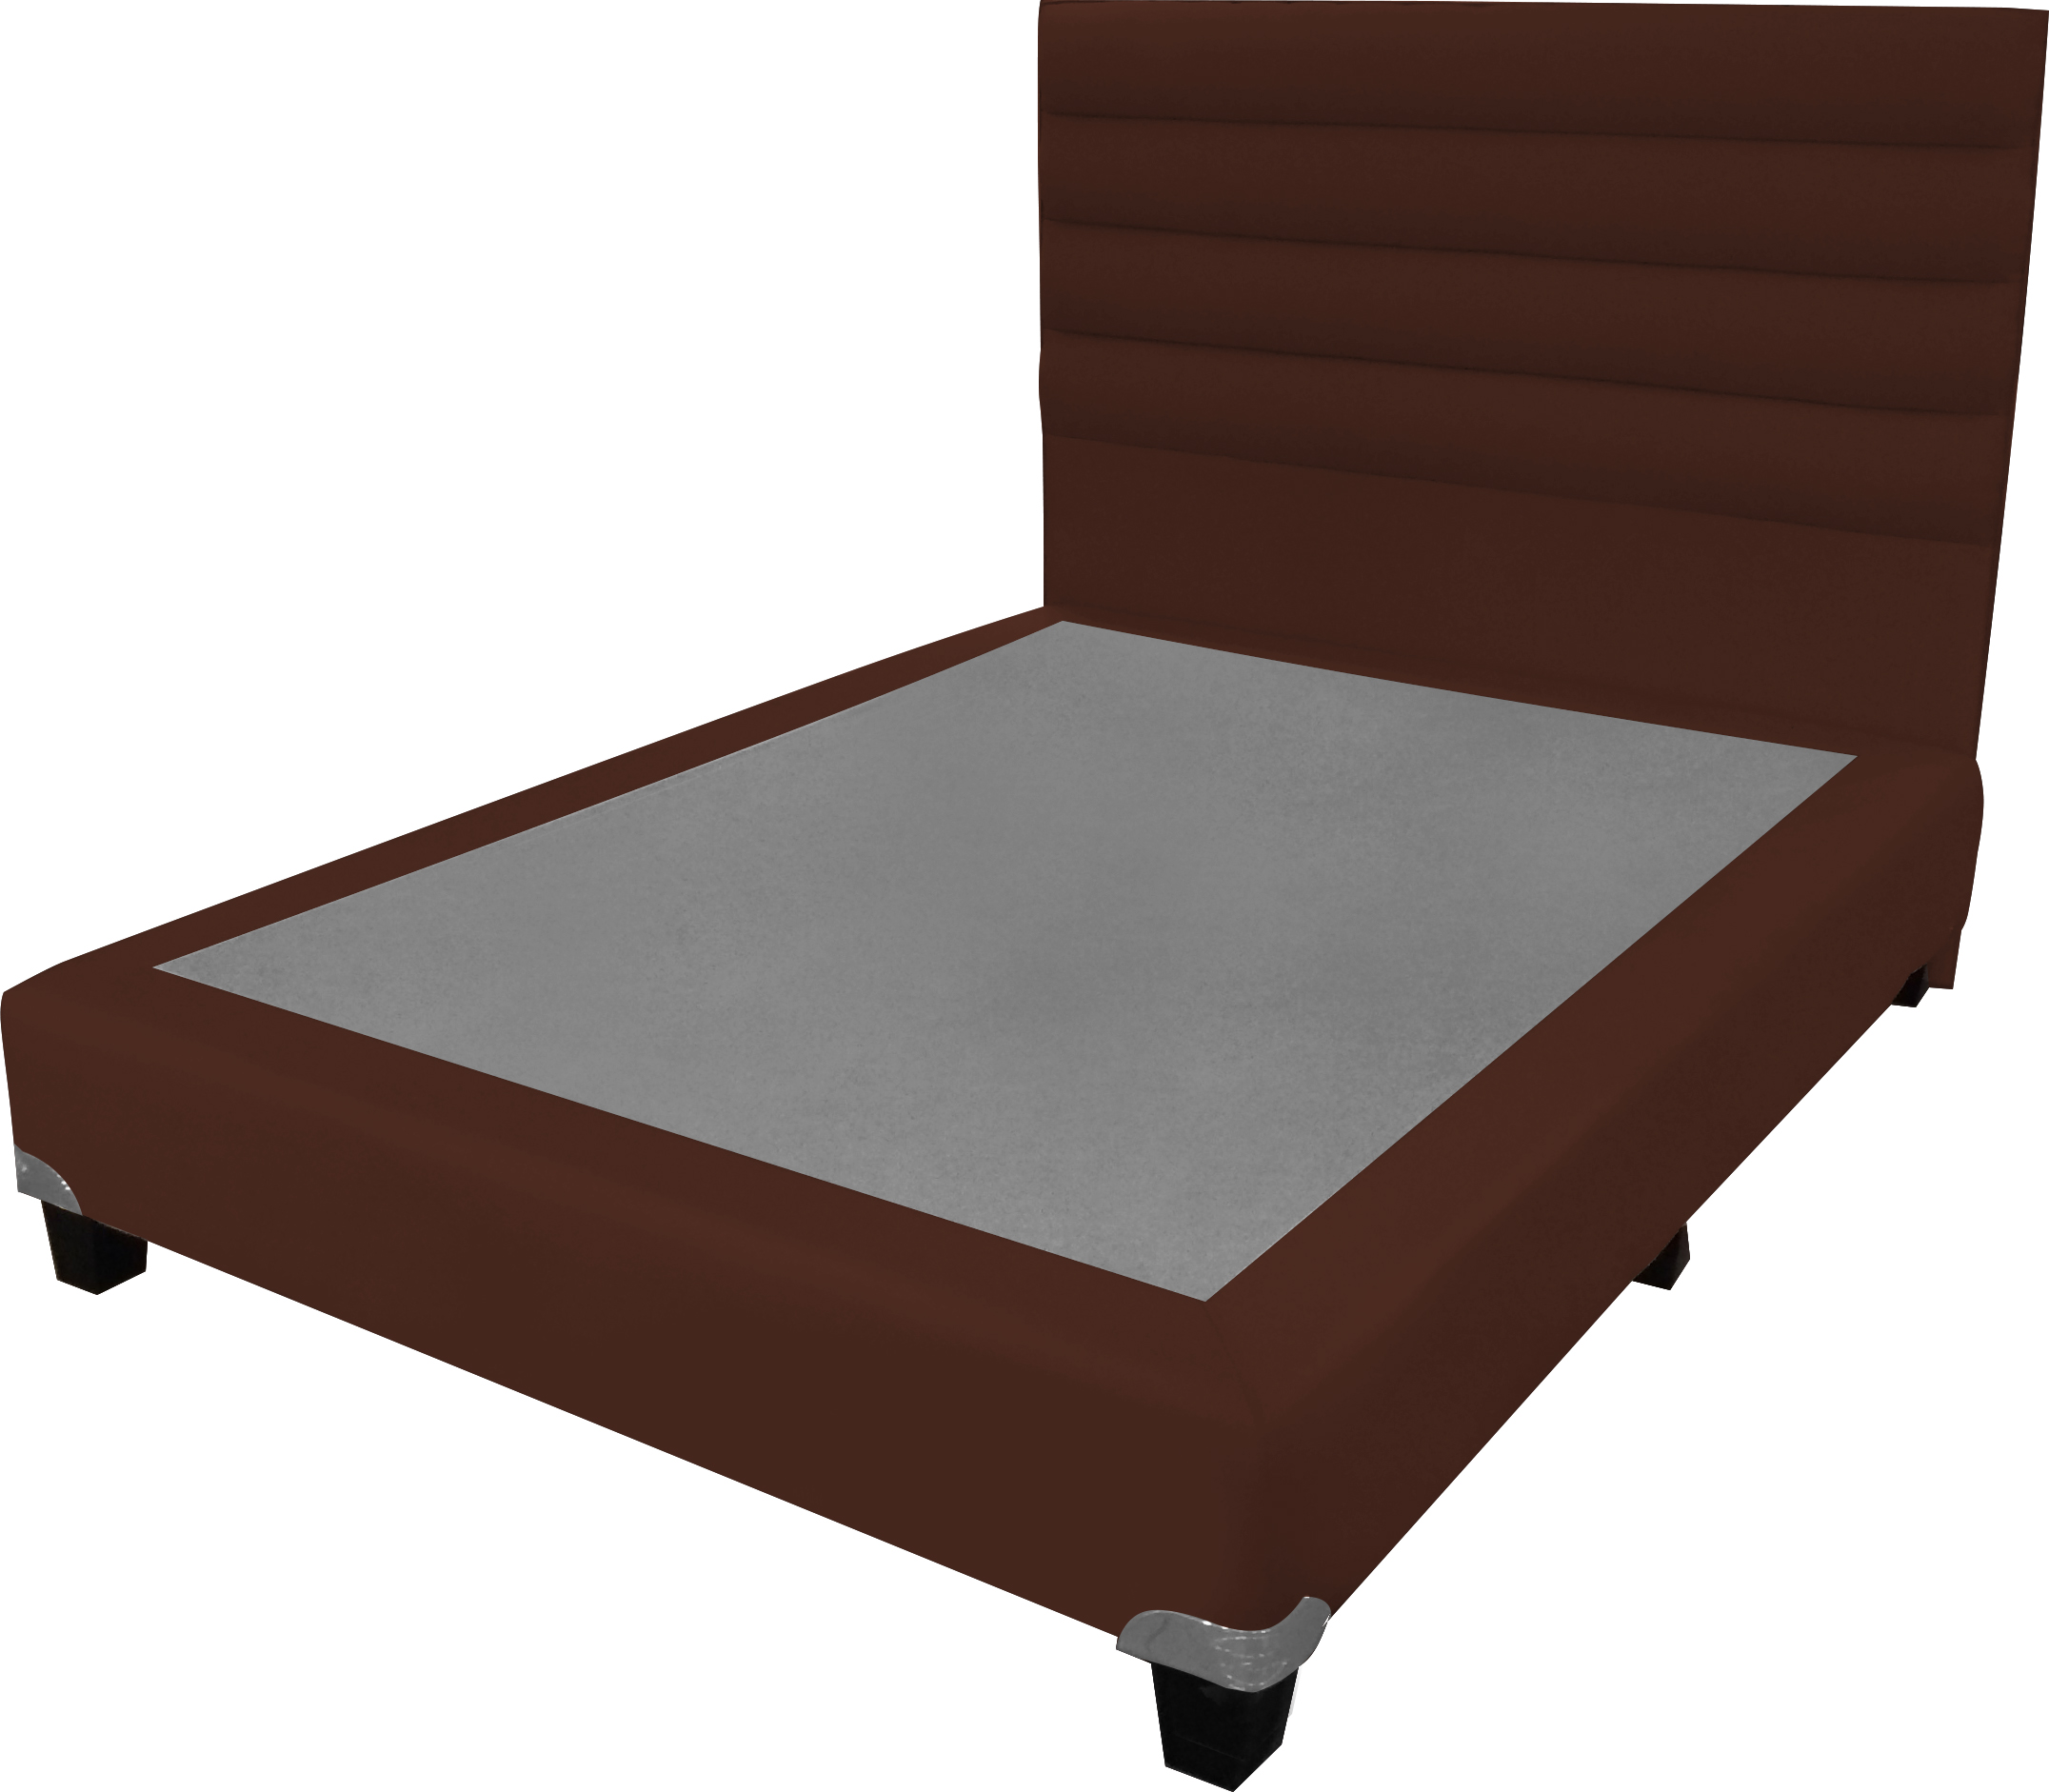 Bed frame Perfect Serenity wooden bed frame TWYLICW